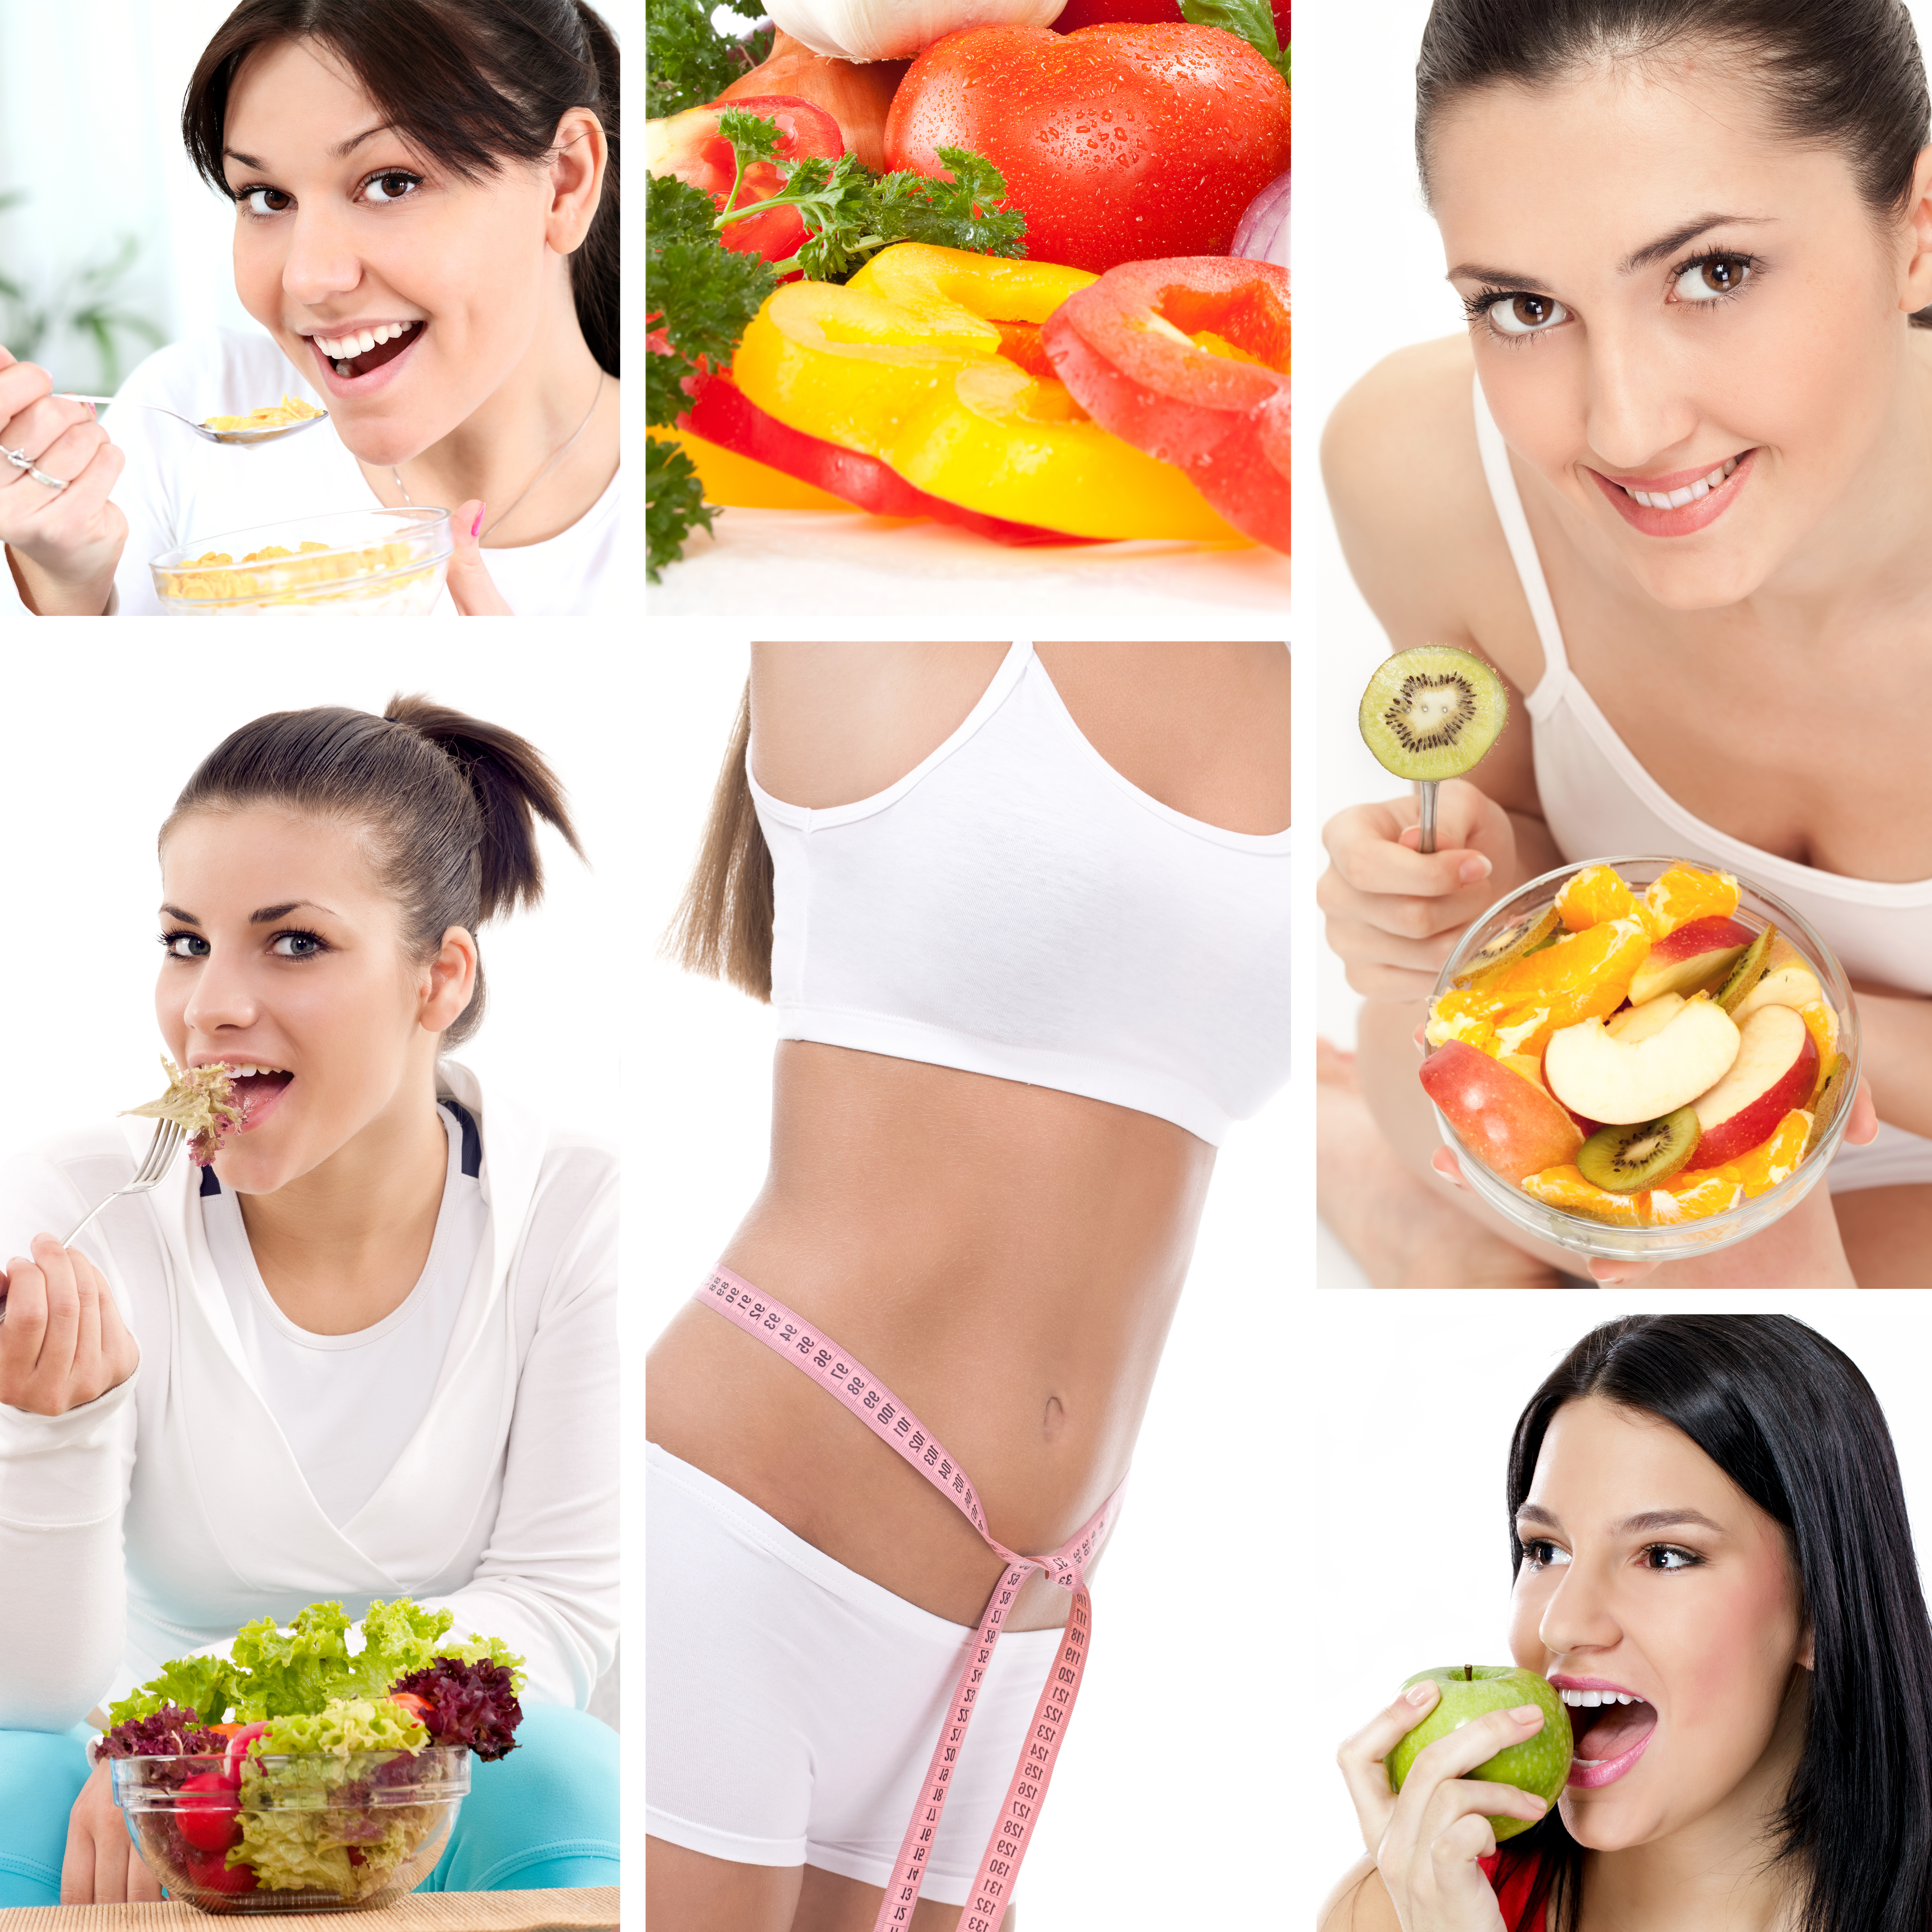 A No Cost Resource for Employee Weight Management